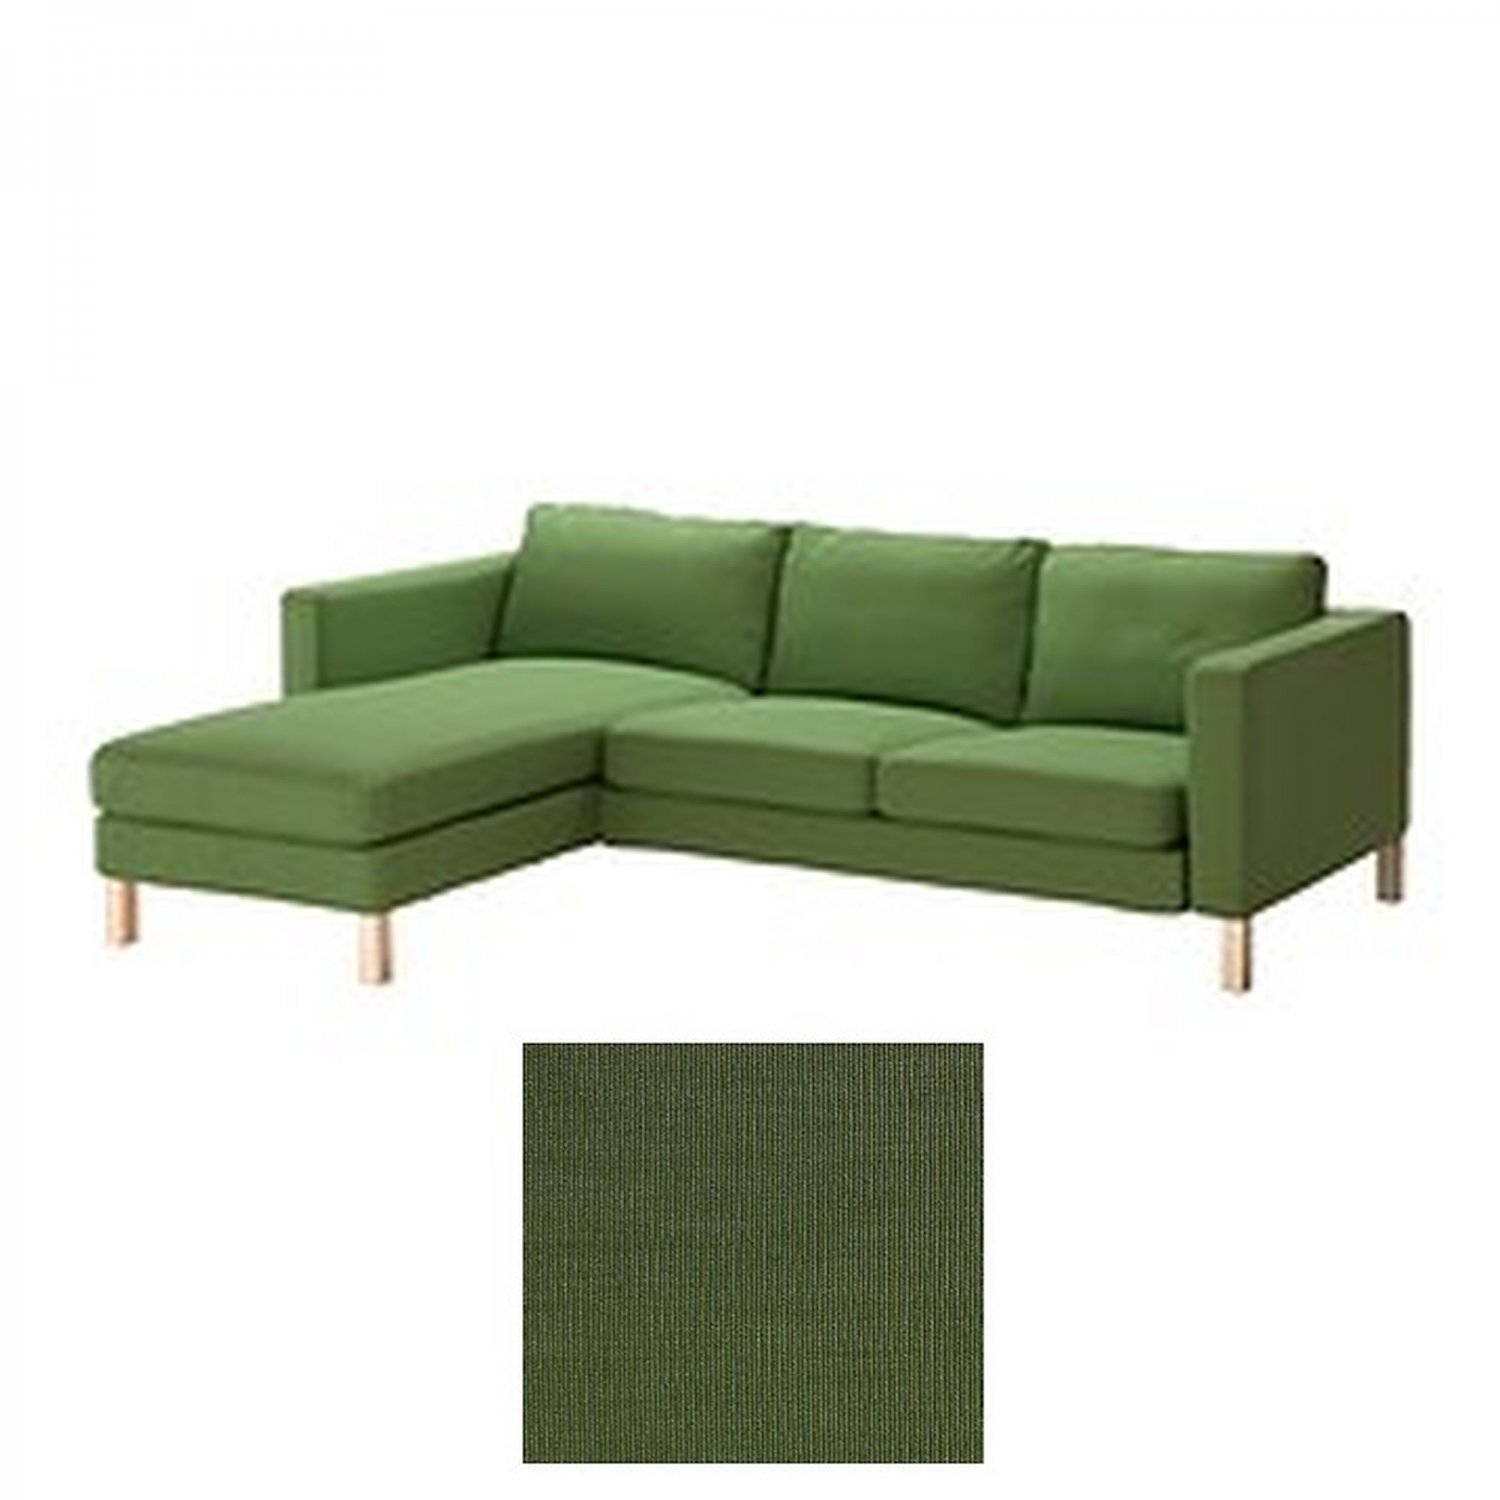 Ikea karlstad 2 seat loveseat sofa and chaise slipcover cover sivik green add on last one Couch and loveseat covers